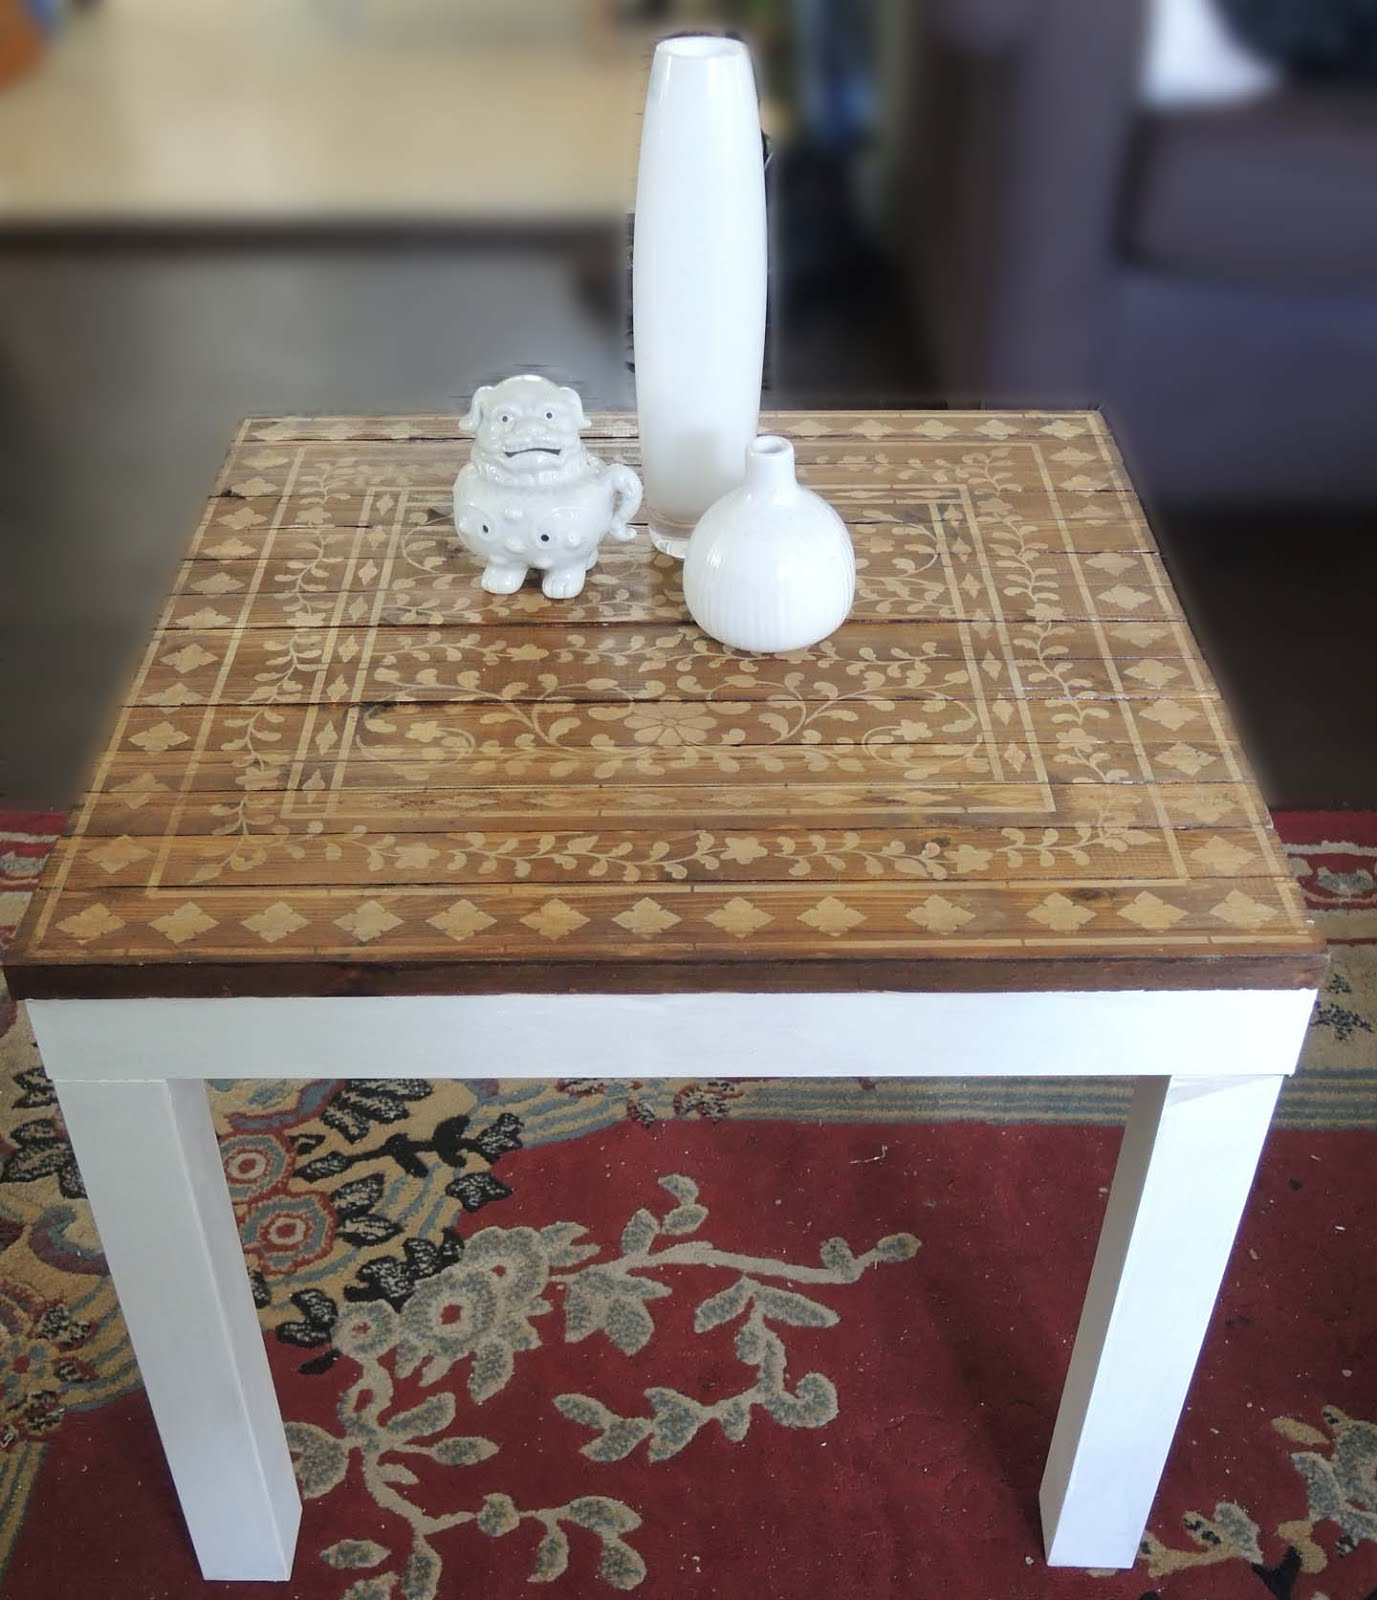 From a Lack table to a sweet little stenciled one IKEA Hackers